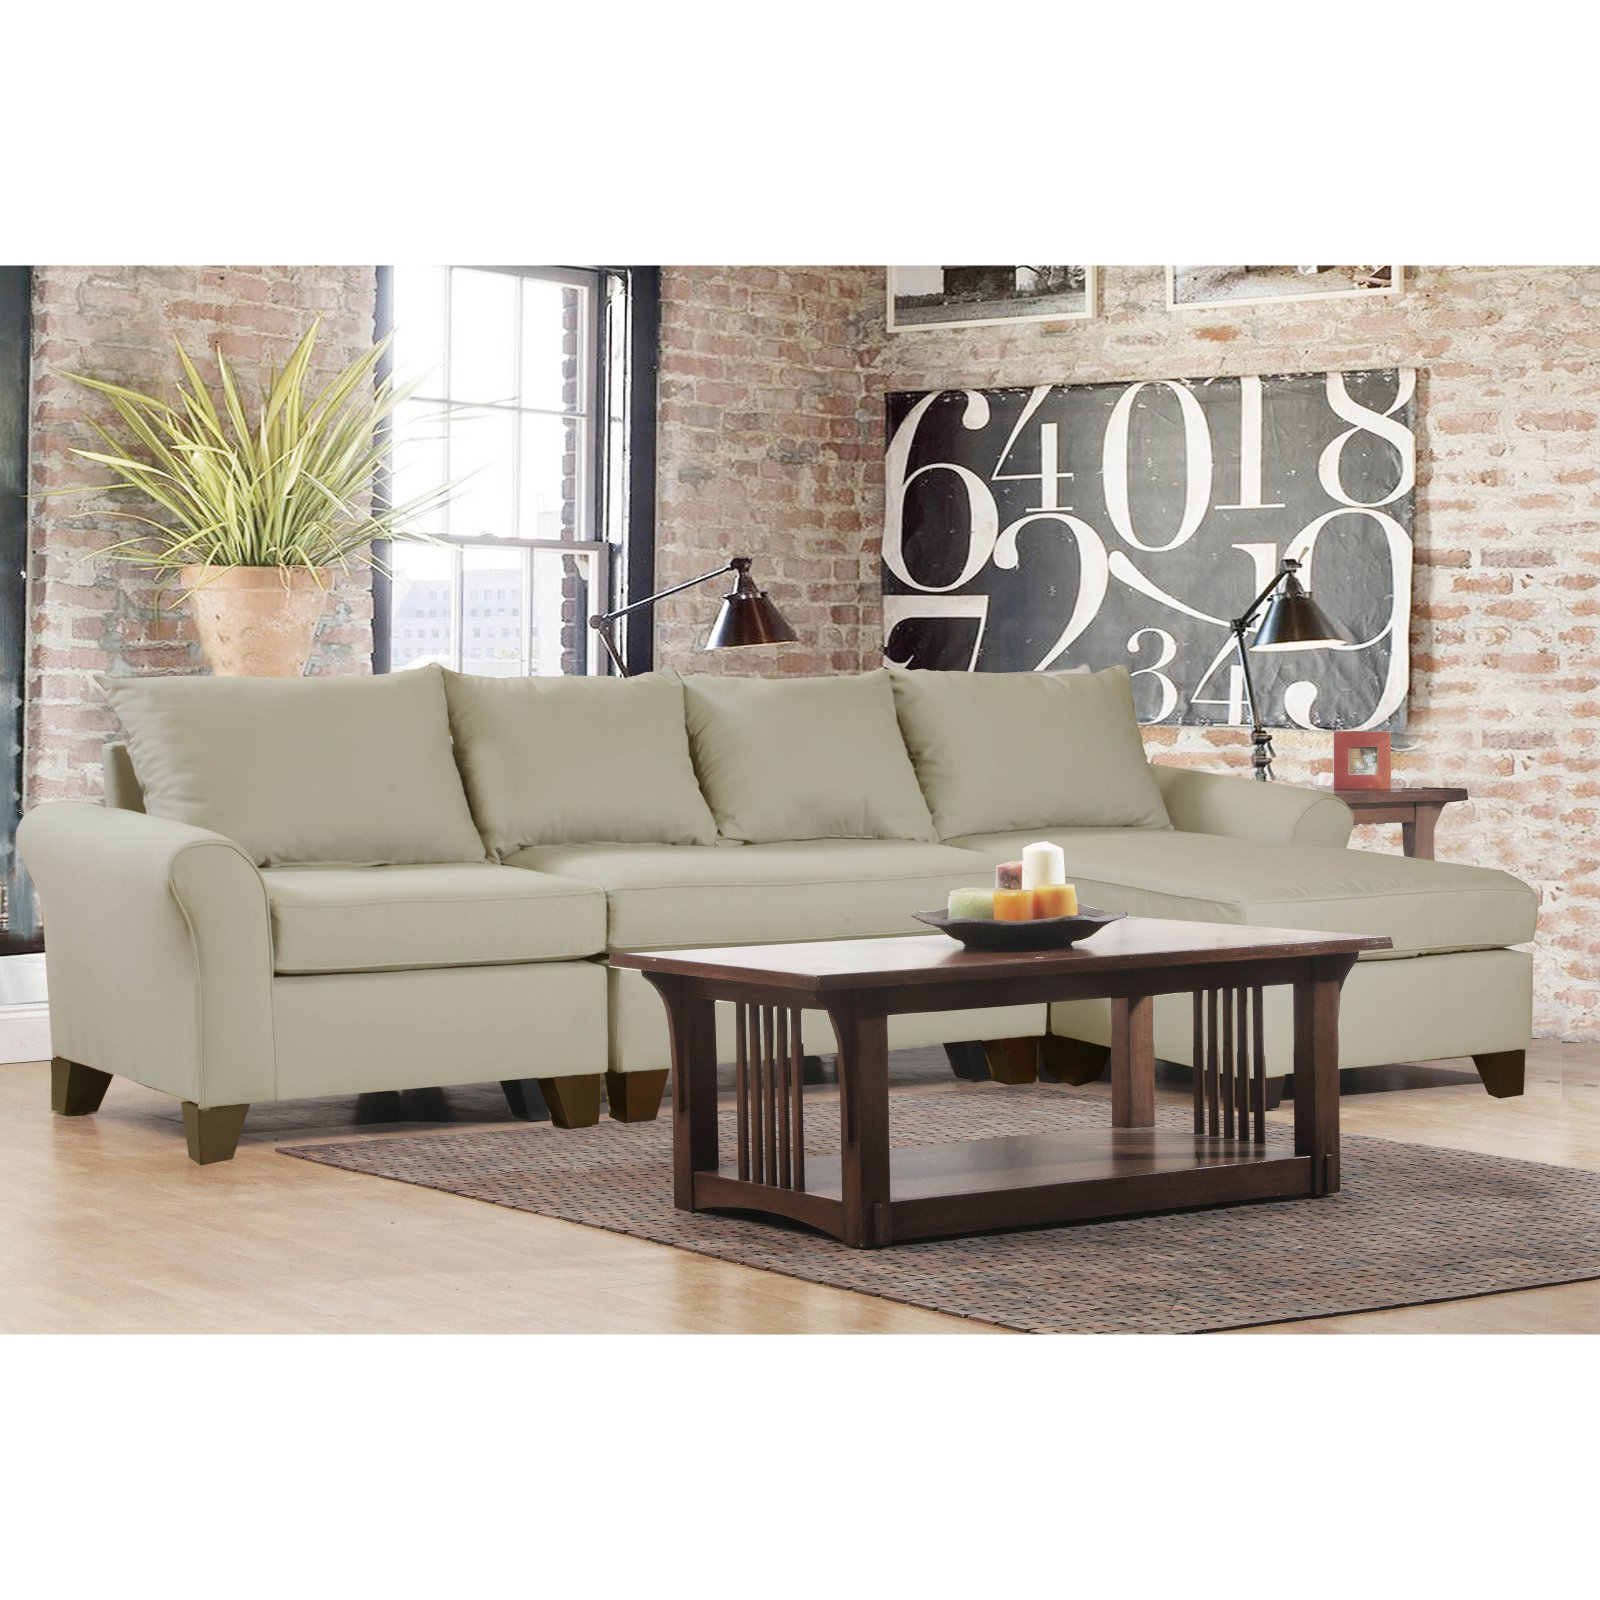 Carolina Accents Belle Meade 3 Piece Sectional